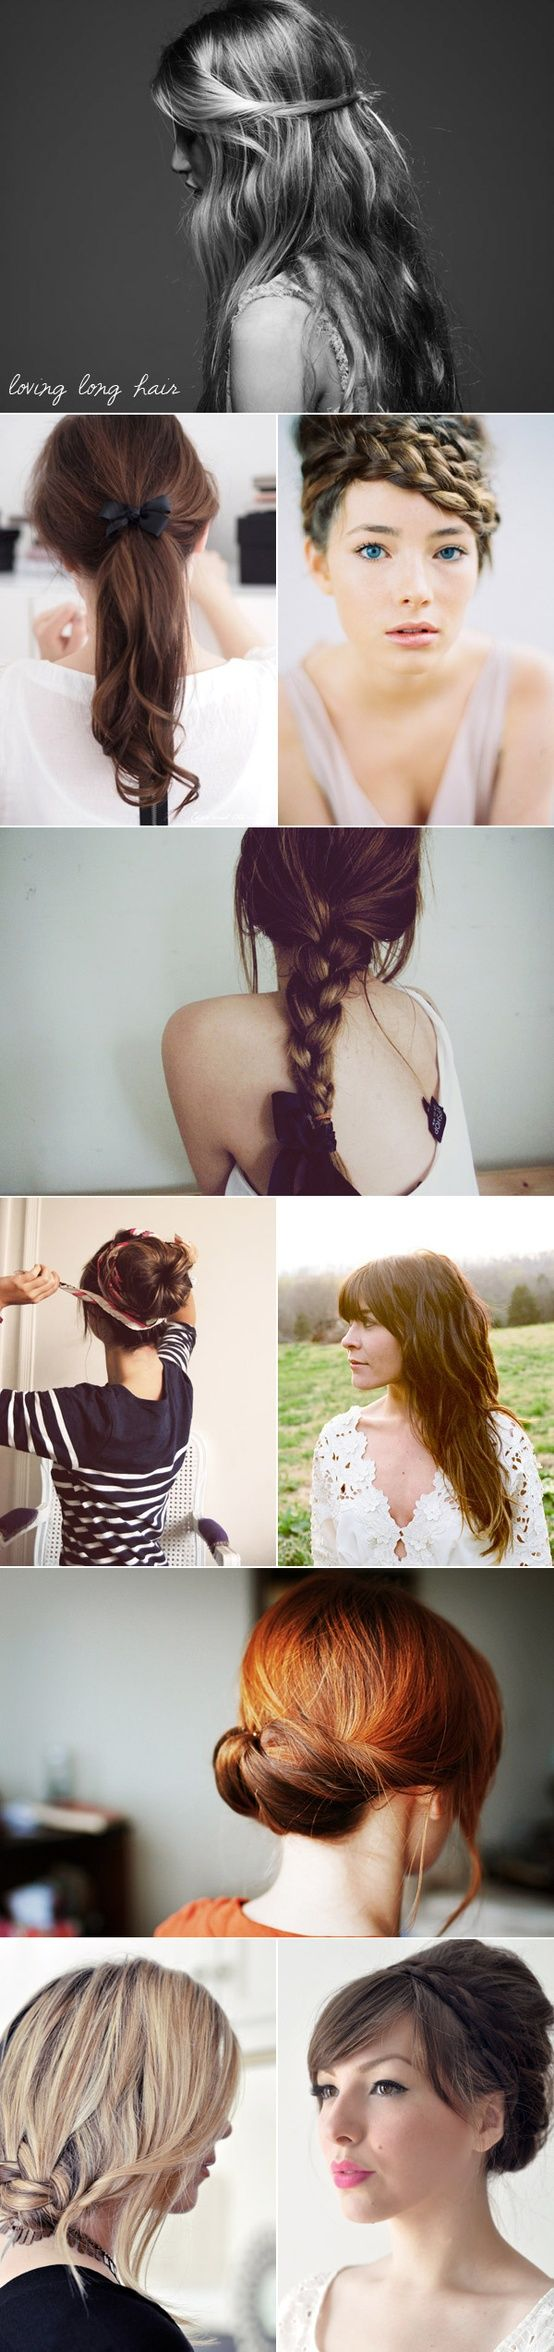 long-hair-styles - Click image to find more Hair & Beauty Pinterest pins